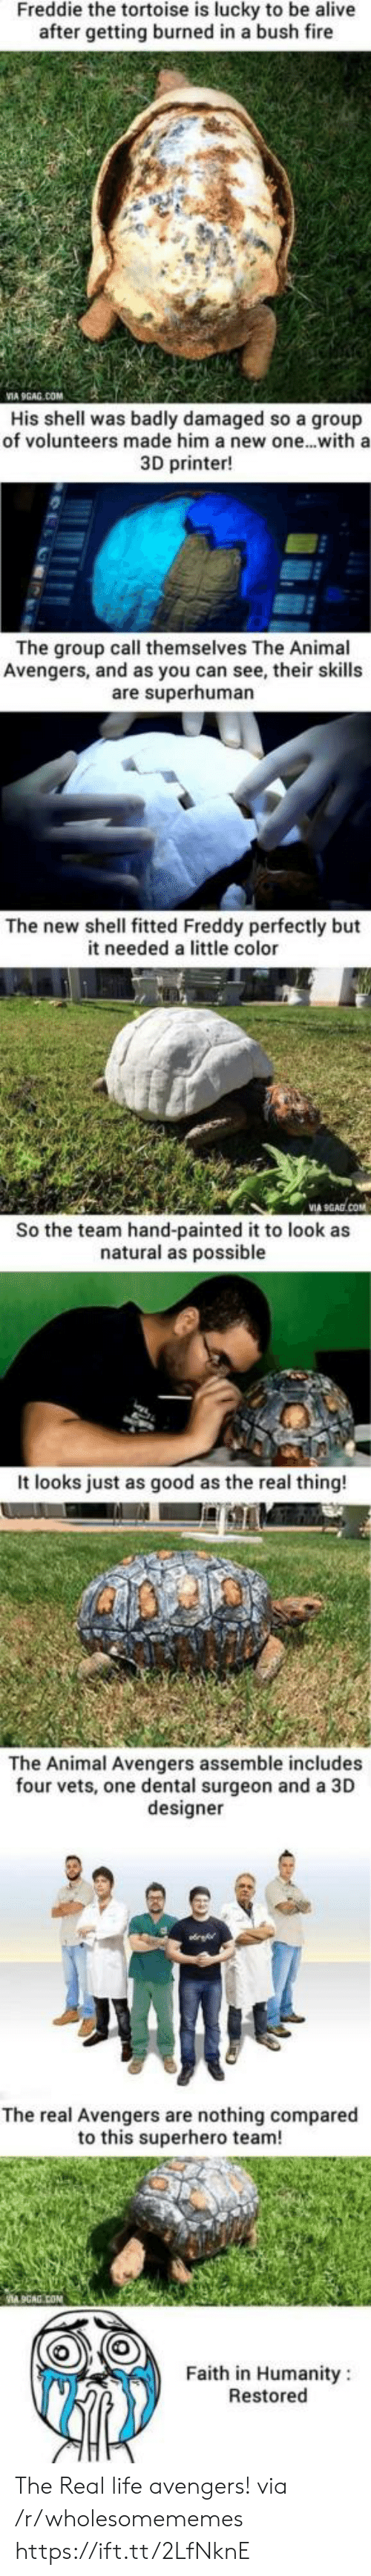 burned: Freddie the tortoise is lucky to be alive  after getting burned in a bush fire  VIA 9GAG.COM  His shell was badly damaged so a group  of volunteers made him a new one...with a  3D printer!  The group call themselves The Animal  Avengers, and as you can see, their skills  are superhuman  The new shell fitted Freddy perfectly but  it needed a little color  So the team hand-painted it to look as  natural as possible  It looks just as good as the real thing!  The Animal Avengers assemble includes  four vets, one dental surgeon and a 3D  designer  The real Avengers are nothing compared  to this superhero team!  Faith in Humanity  Restored The Real life avengers! via /r/wholesomememes https://ift.tt/2LfNknE